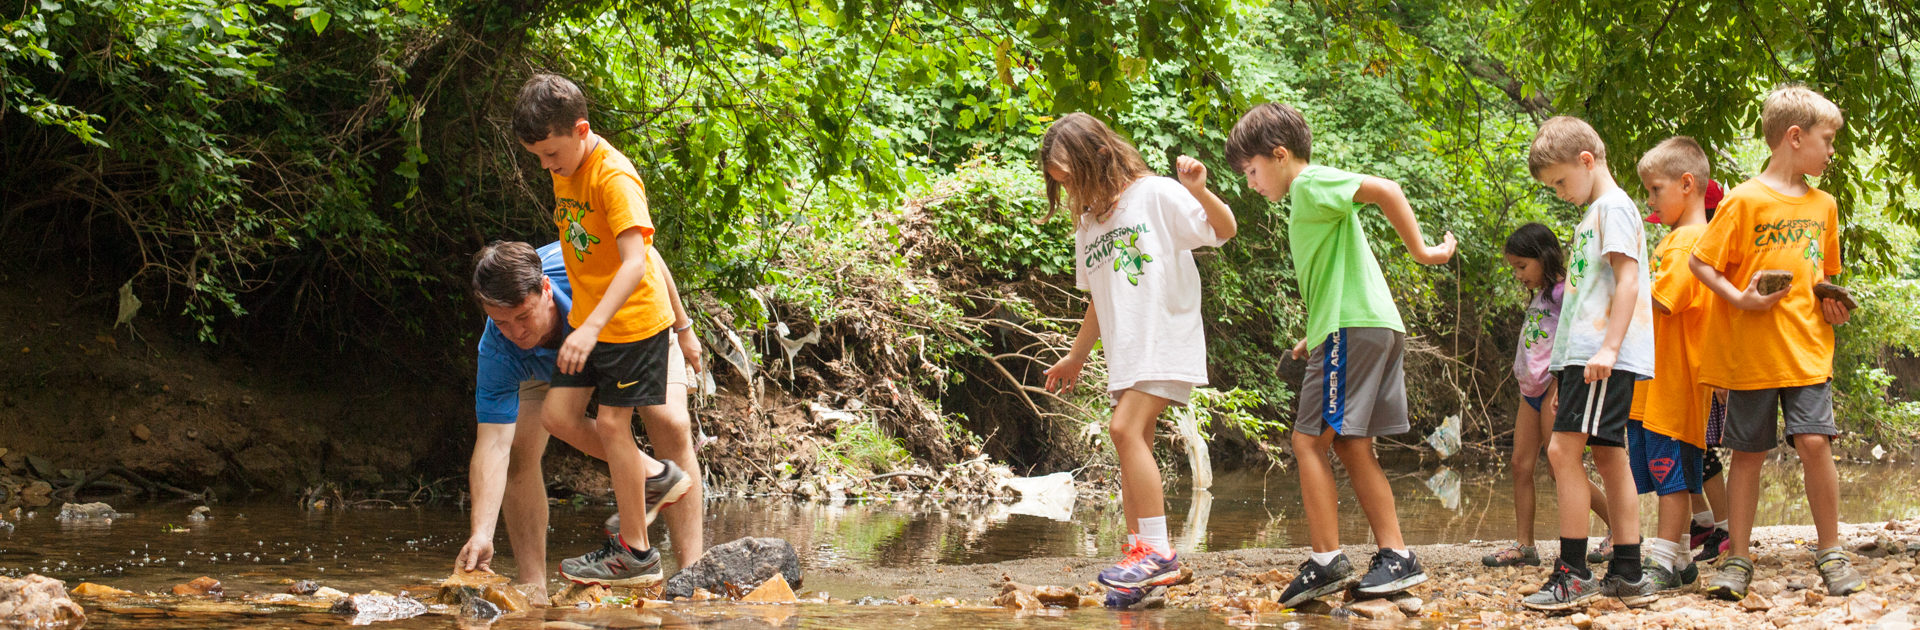 counselor helping a group of campers cross a stream over rocks